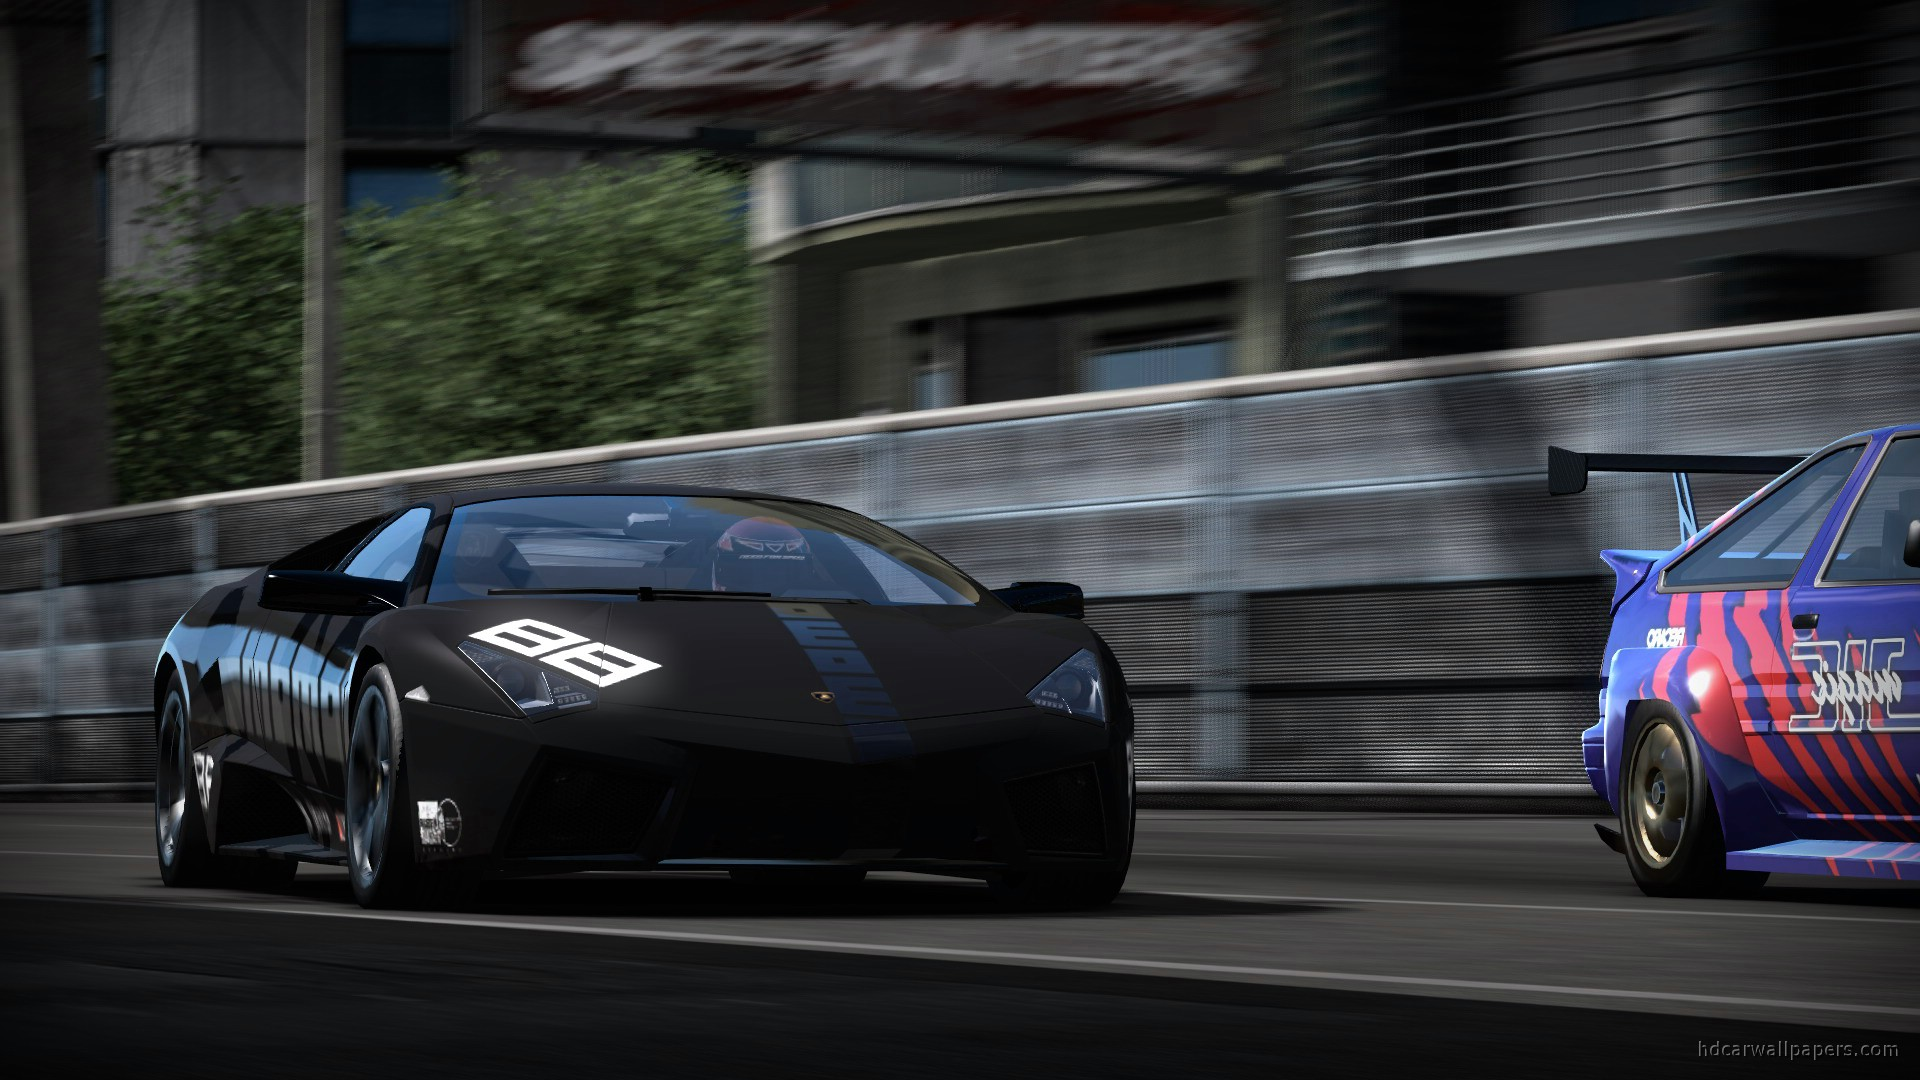 Lamborghini Need For Speed Shift Wallpaper Hd Car Wallpapers Id 911